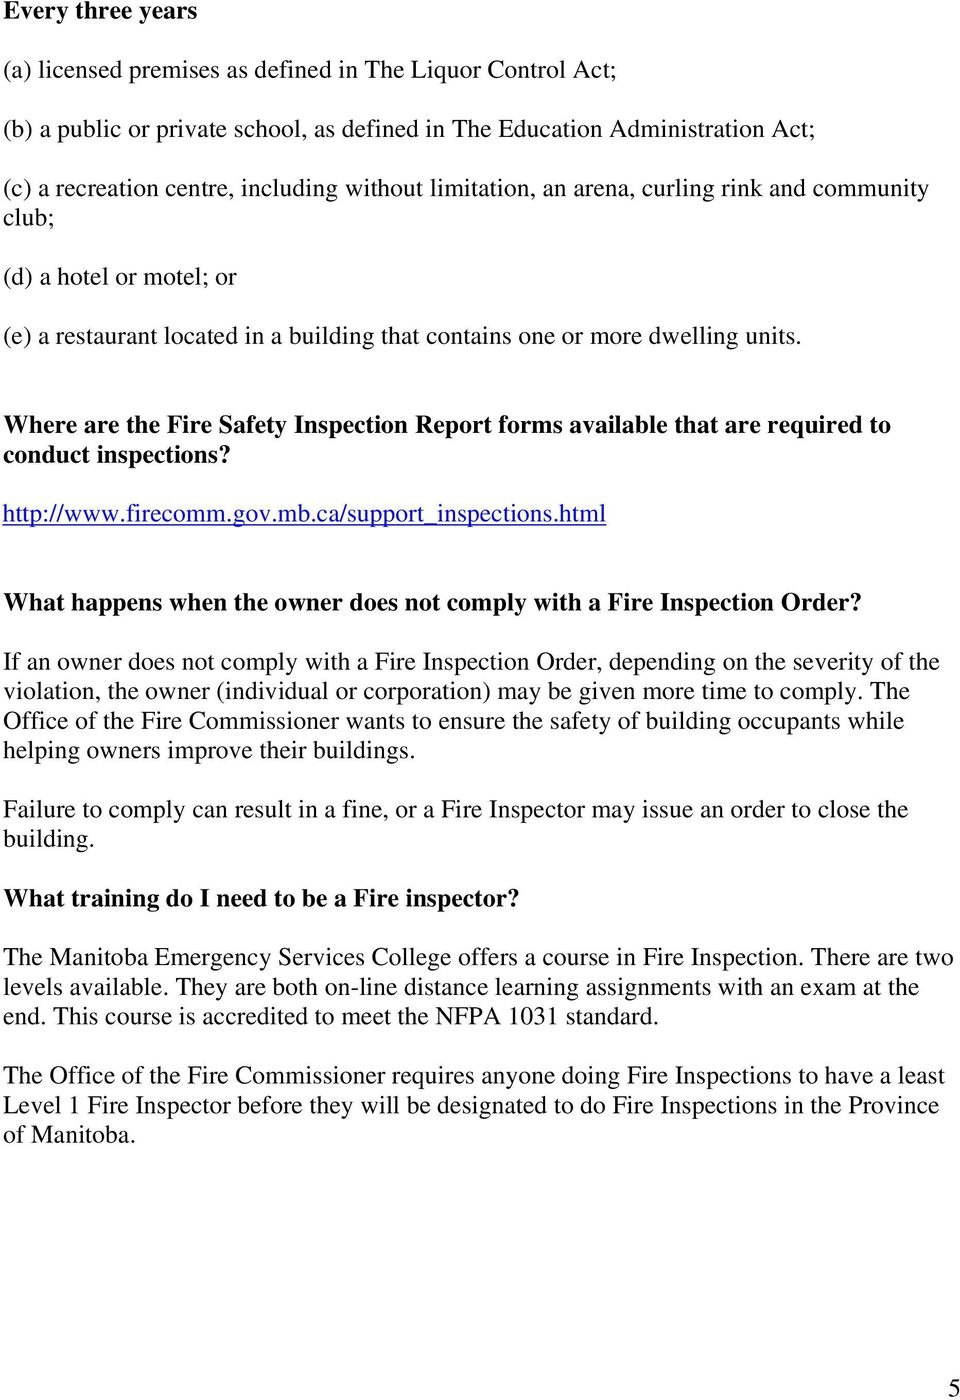 Where are the Fire Safety Inspection Report forms available that are required to conduct inspections? http://www.firecomm.gov.mb.ca/support_inspections.